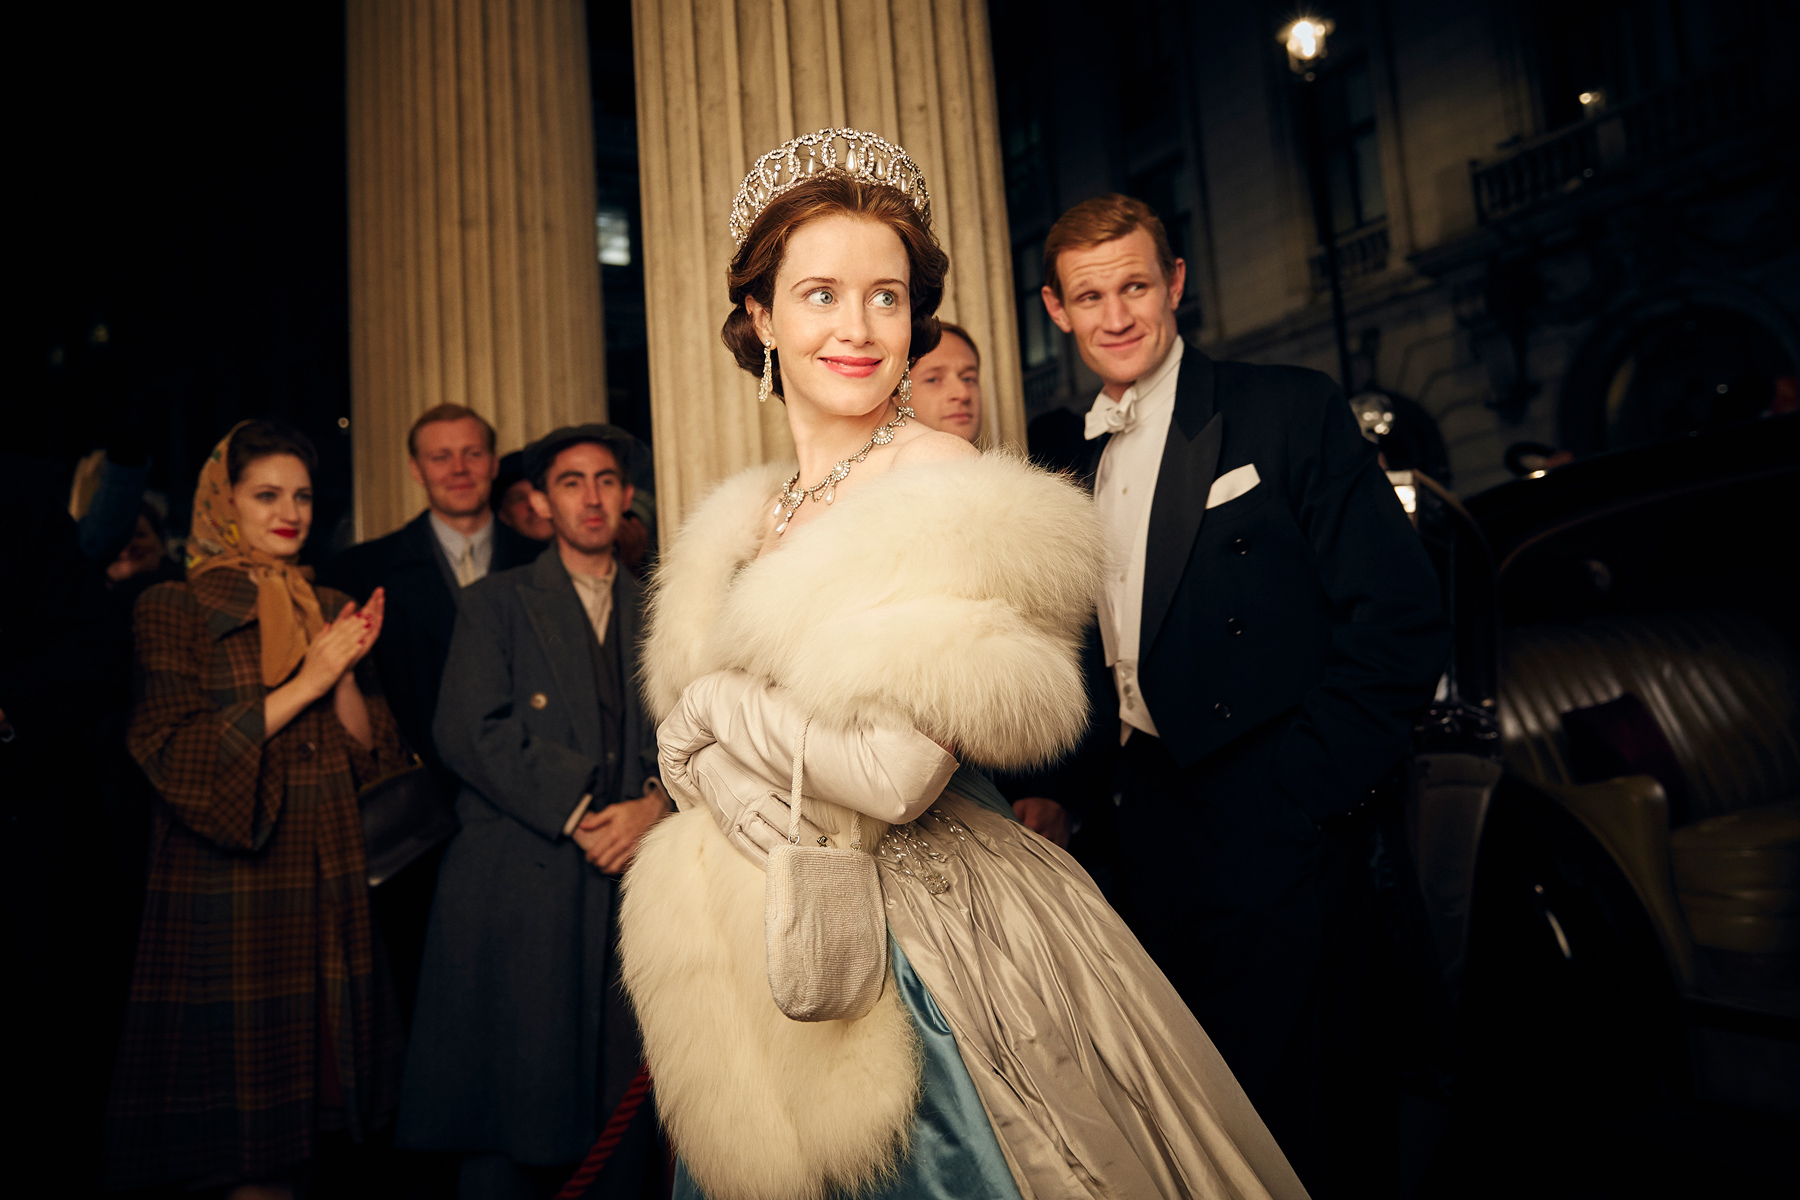 Netflix's 'The Crown' earns the lone streaming win at the SAG Awards